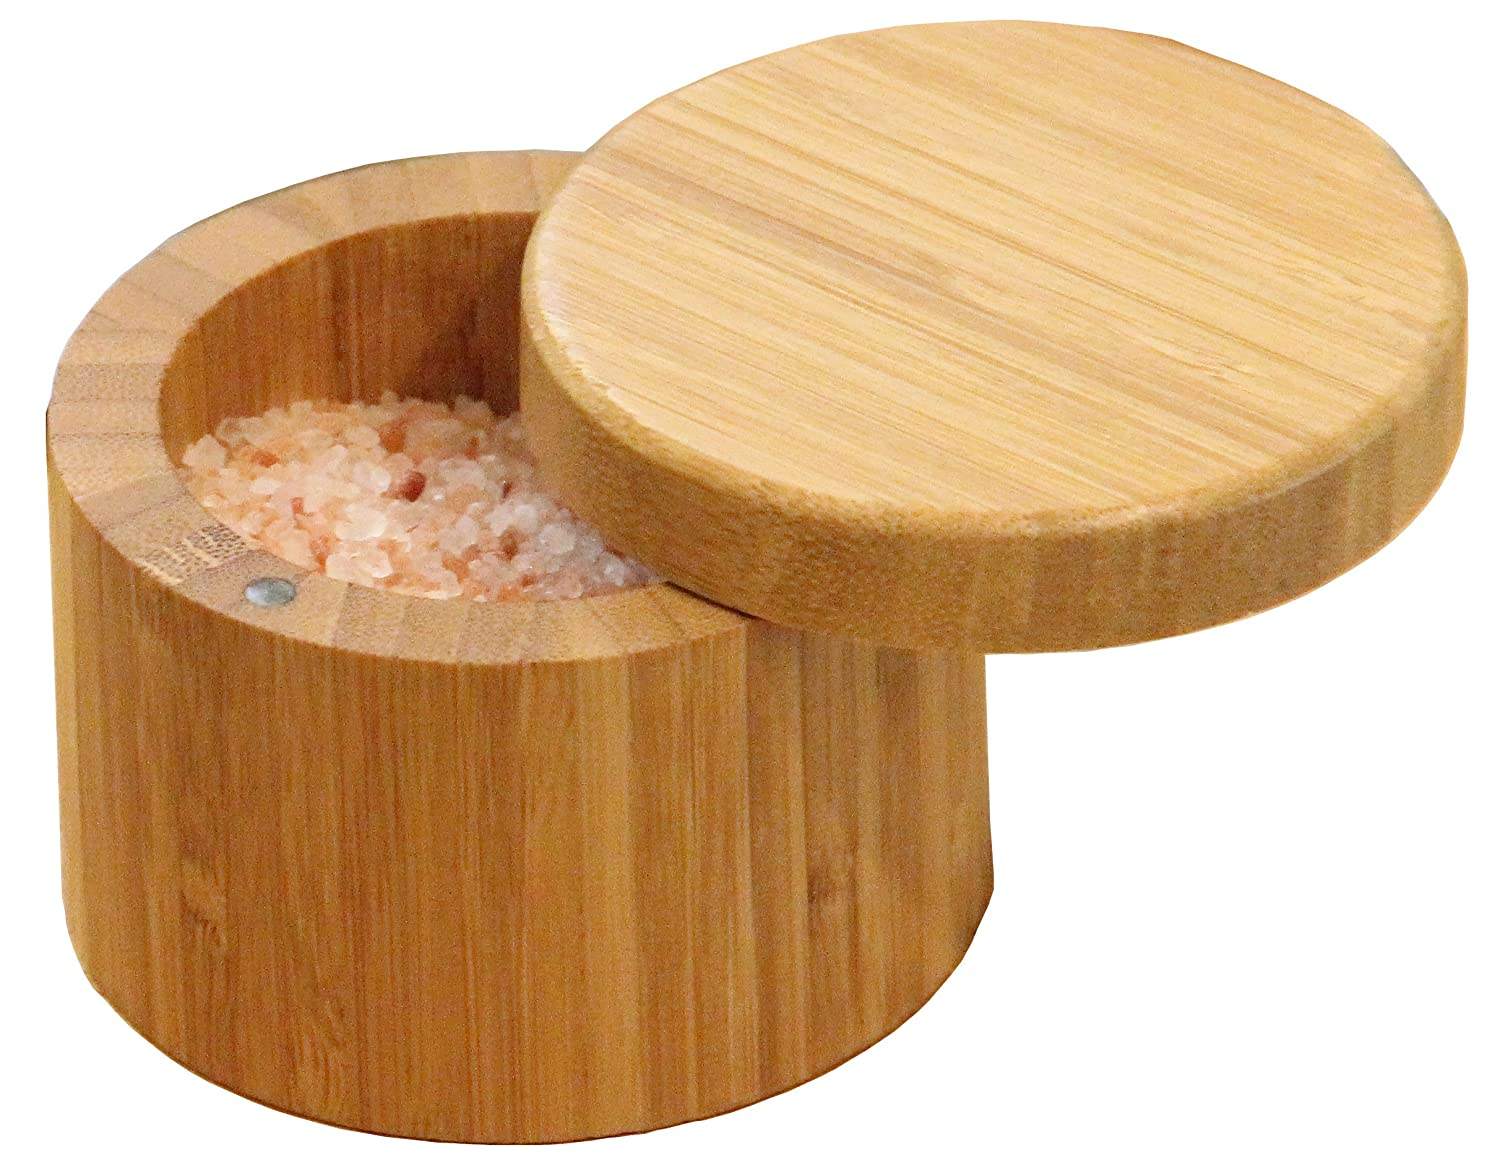 Round Bamboo Salt Box Eco-Friendly, 100% Organic bamboo, Professional-Grade,The best salt storage container on the market.